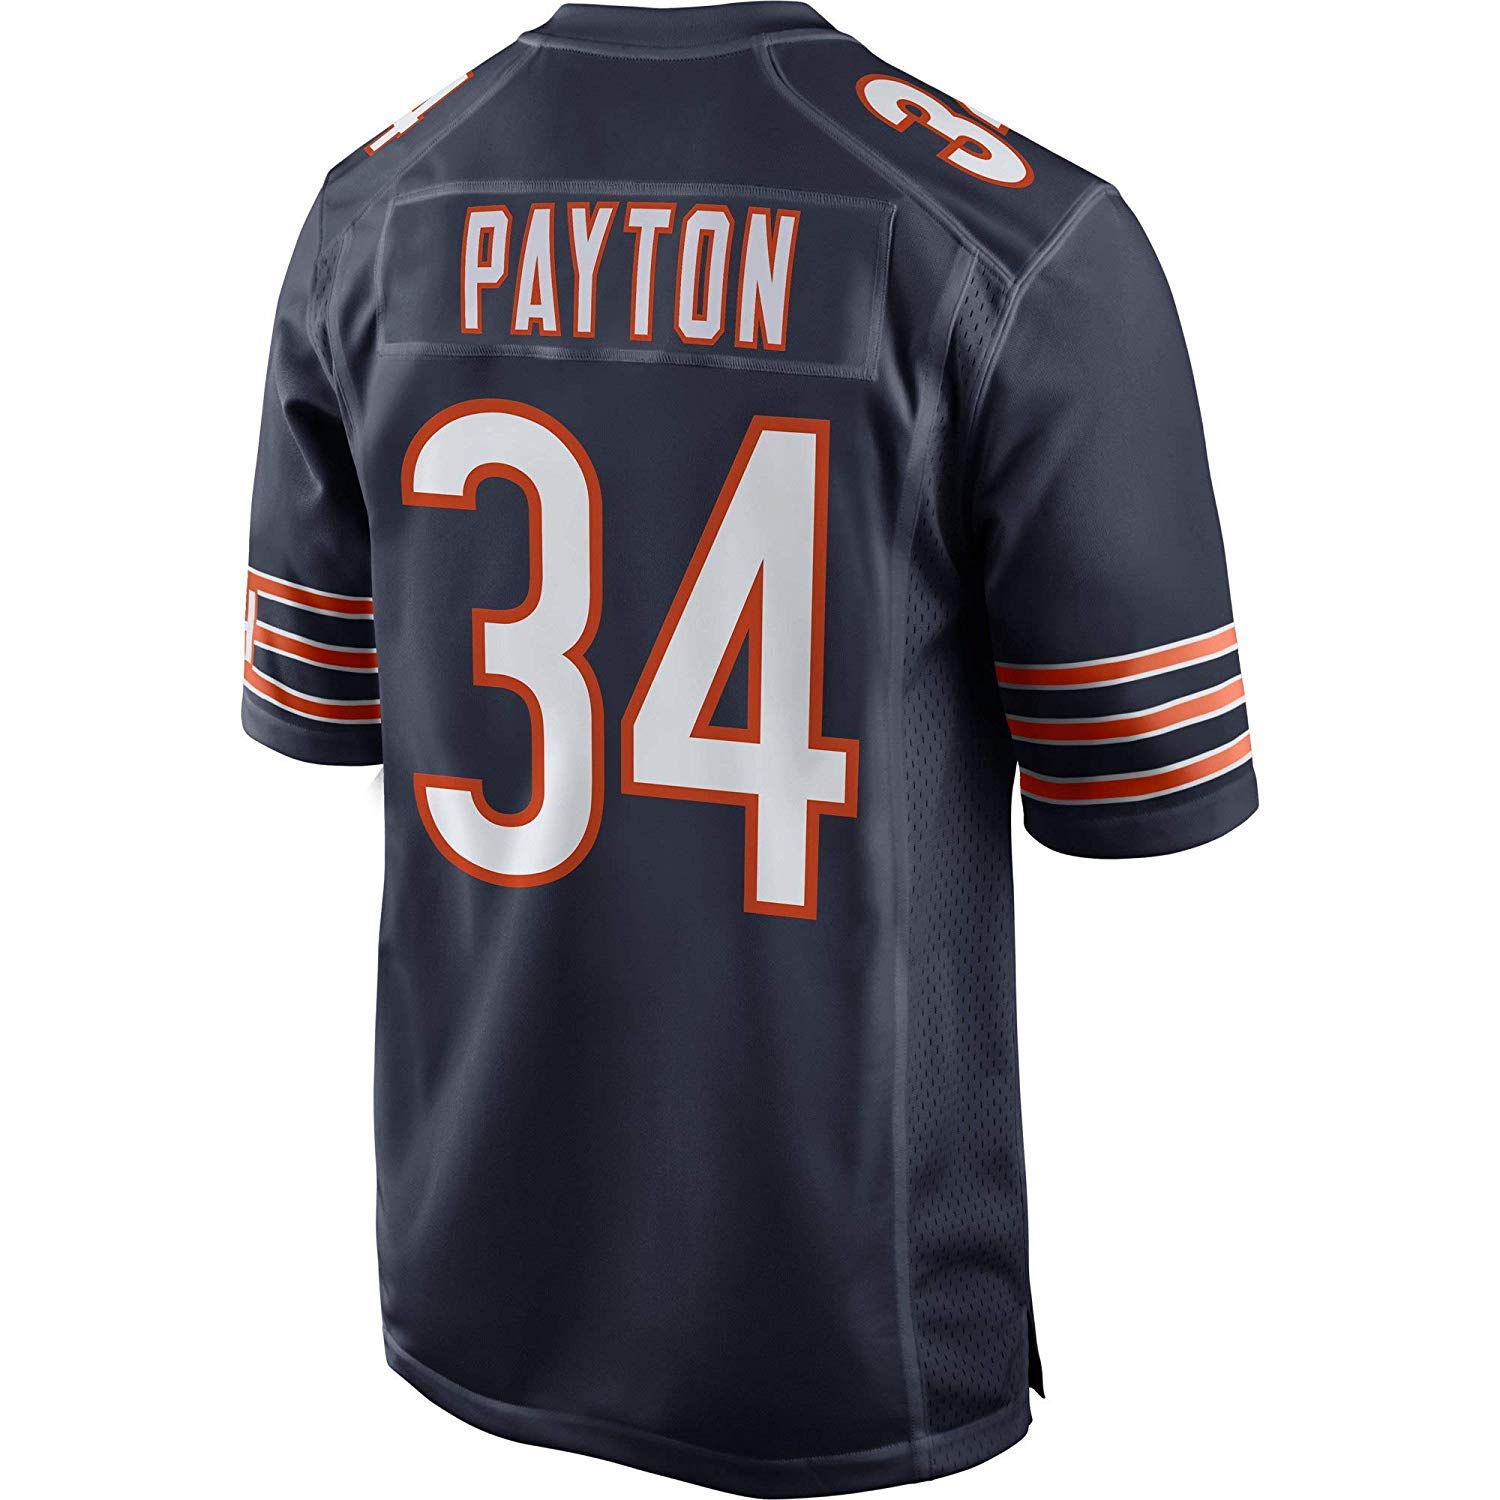 JEMWY Mens//Womens//Youth/_Walter/_Payton/_#34/_Navy/_Player/_Sportswears/_Training/_Competition/_Jersey